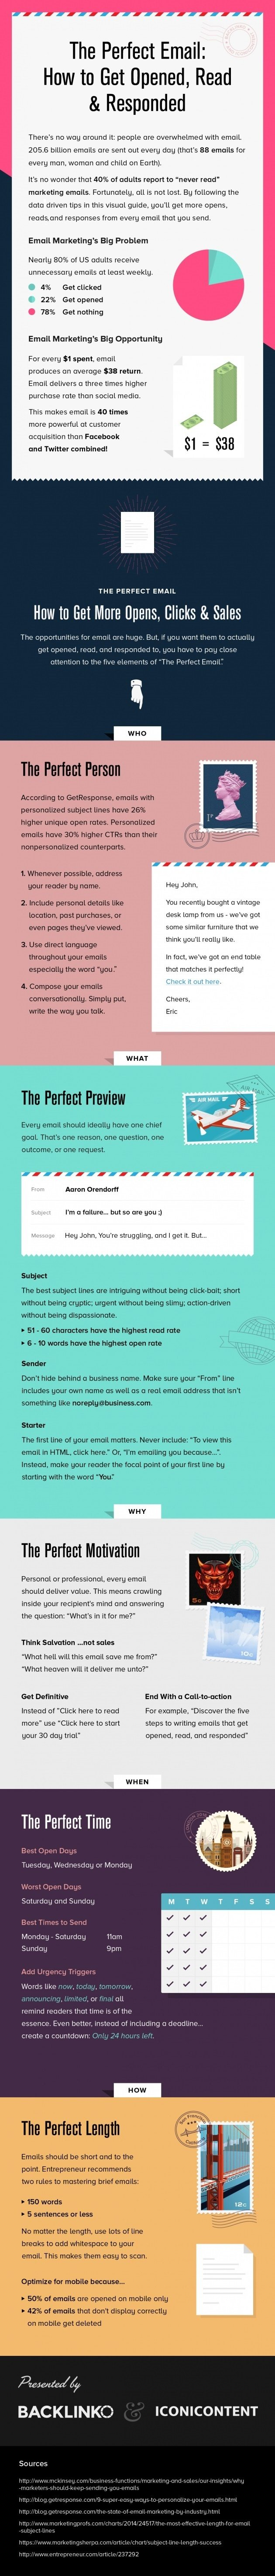 How to create an email which gets opened and generates clicks